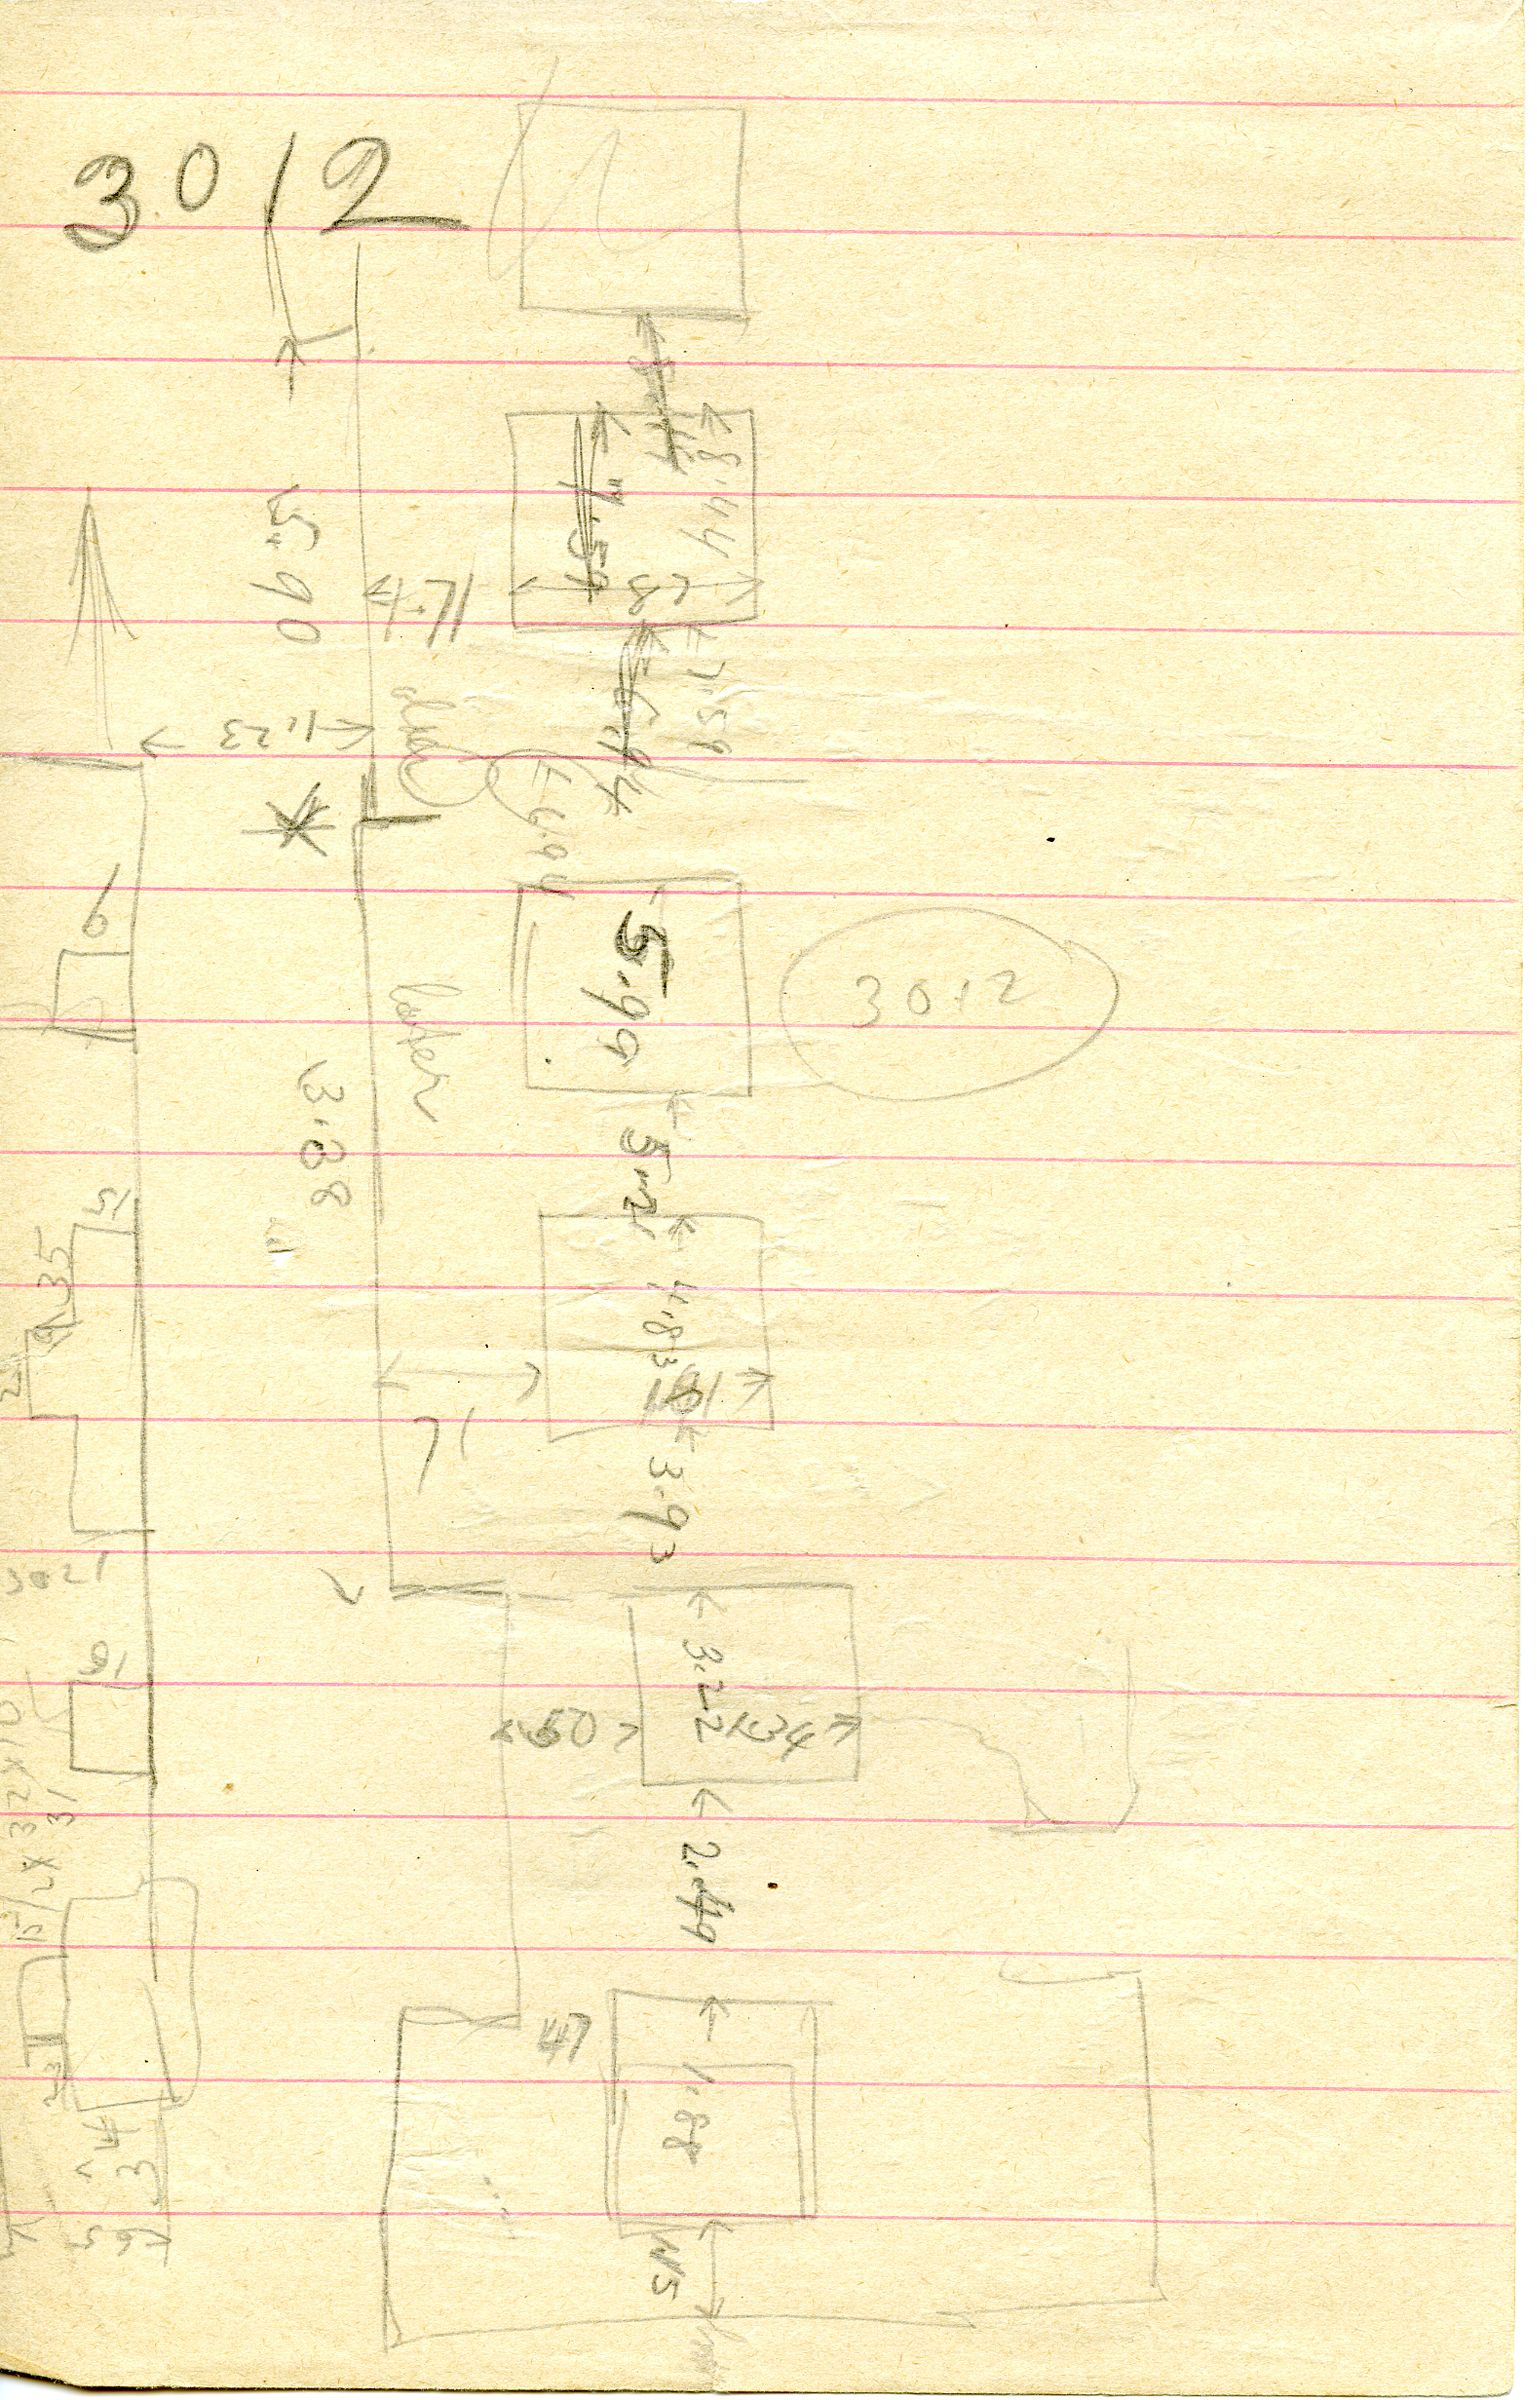 Maps and plans: G 3012, Sketch plan